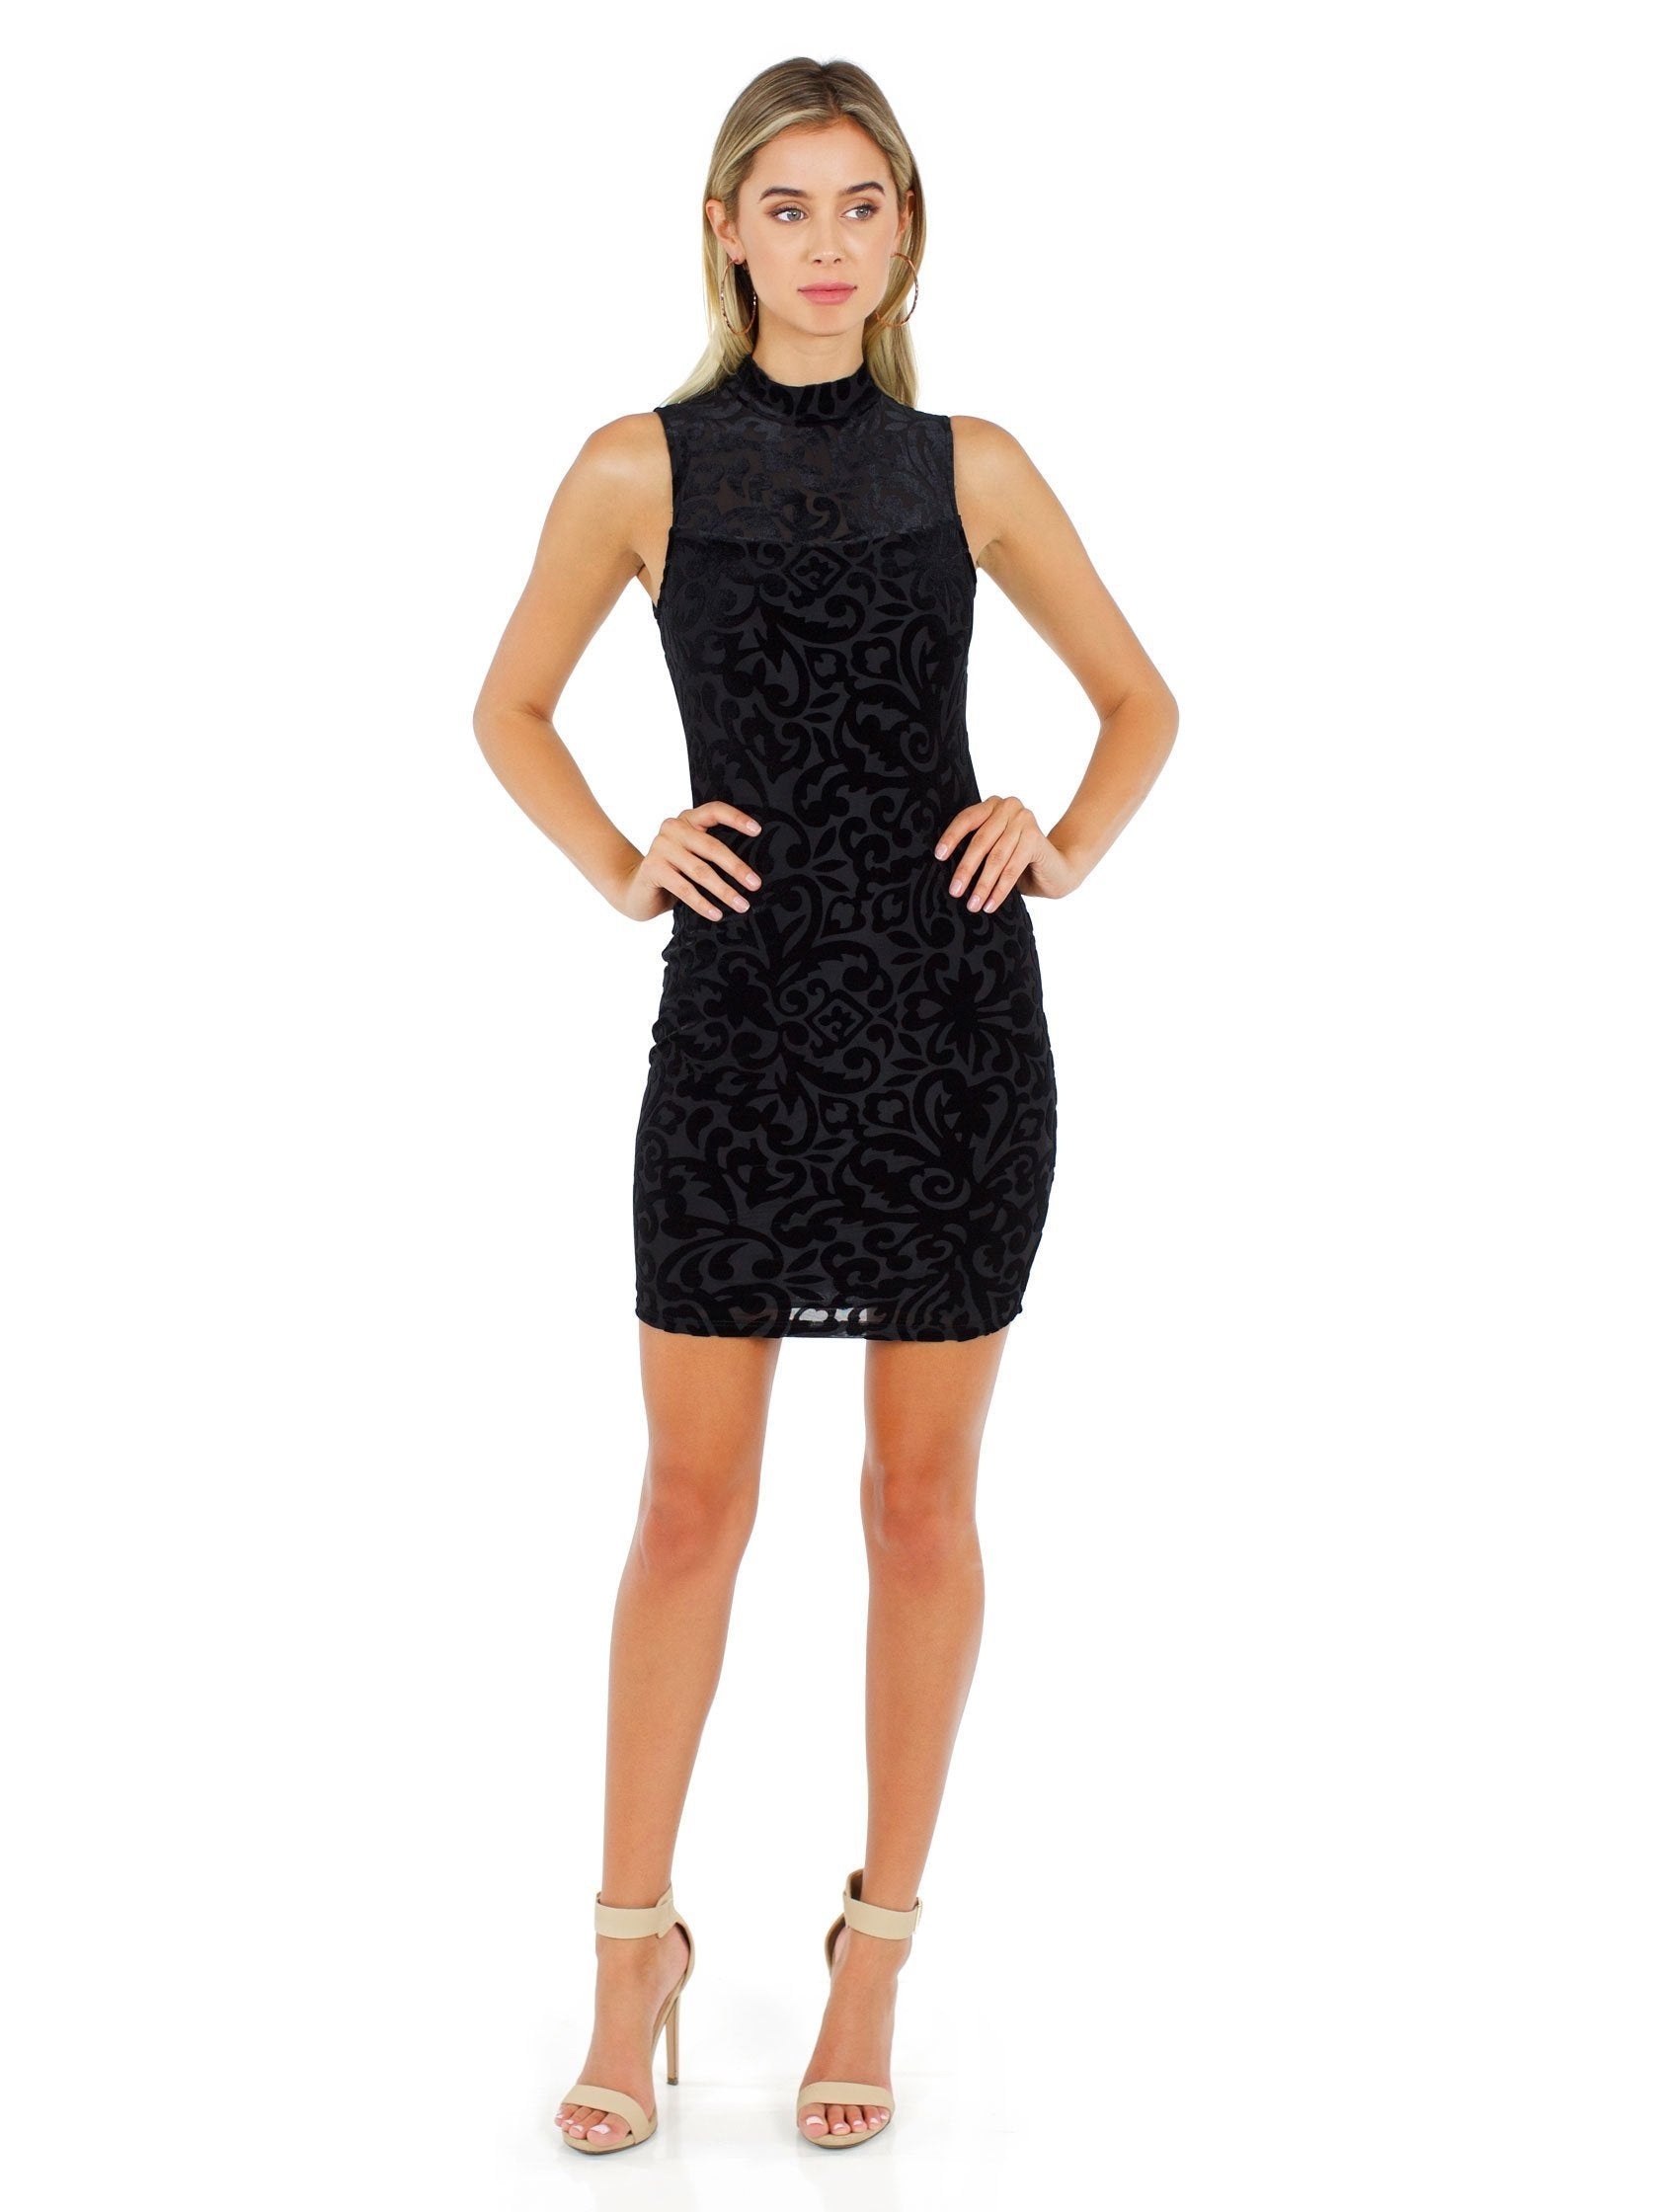 Girl outfit in a dress rental from AQUA called Velvet Burnout Mock Dress